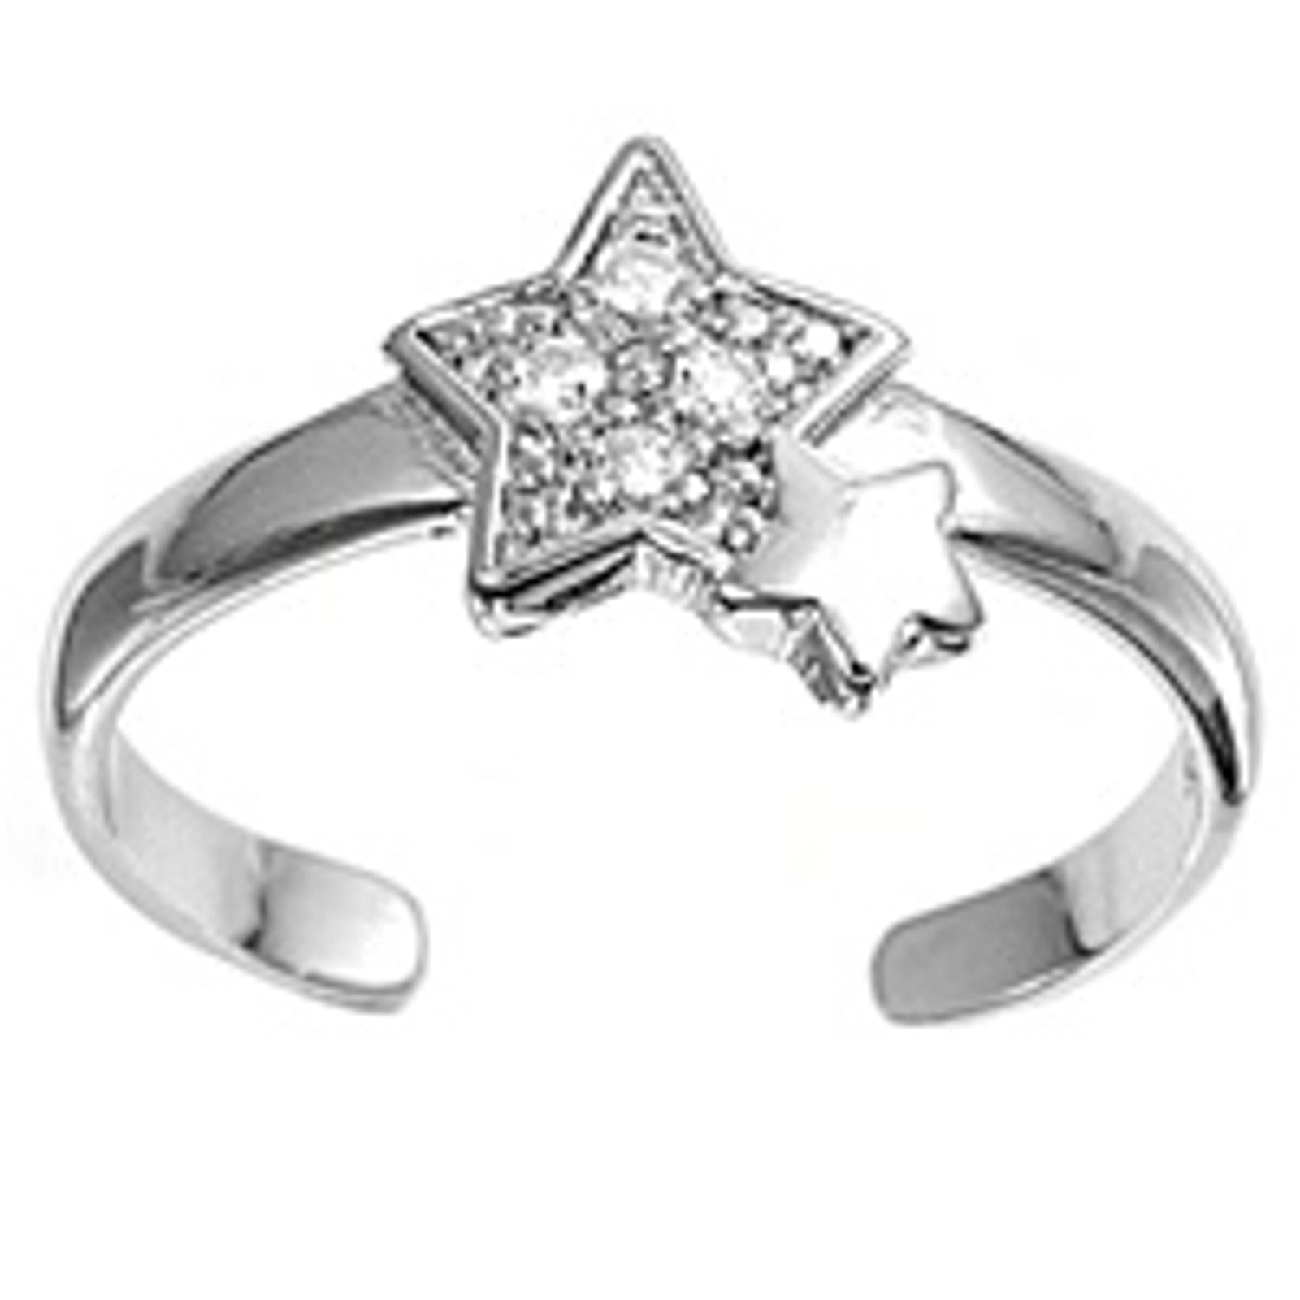 Star With Clear Cubic Zirconia And Plain Star Adjustable Toe Ring